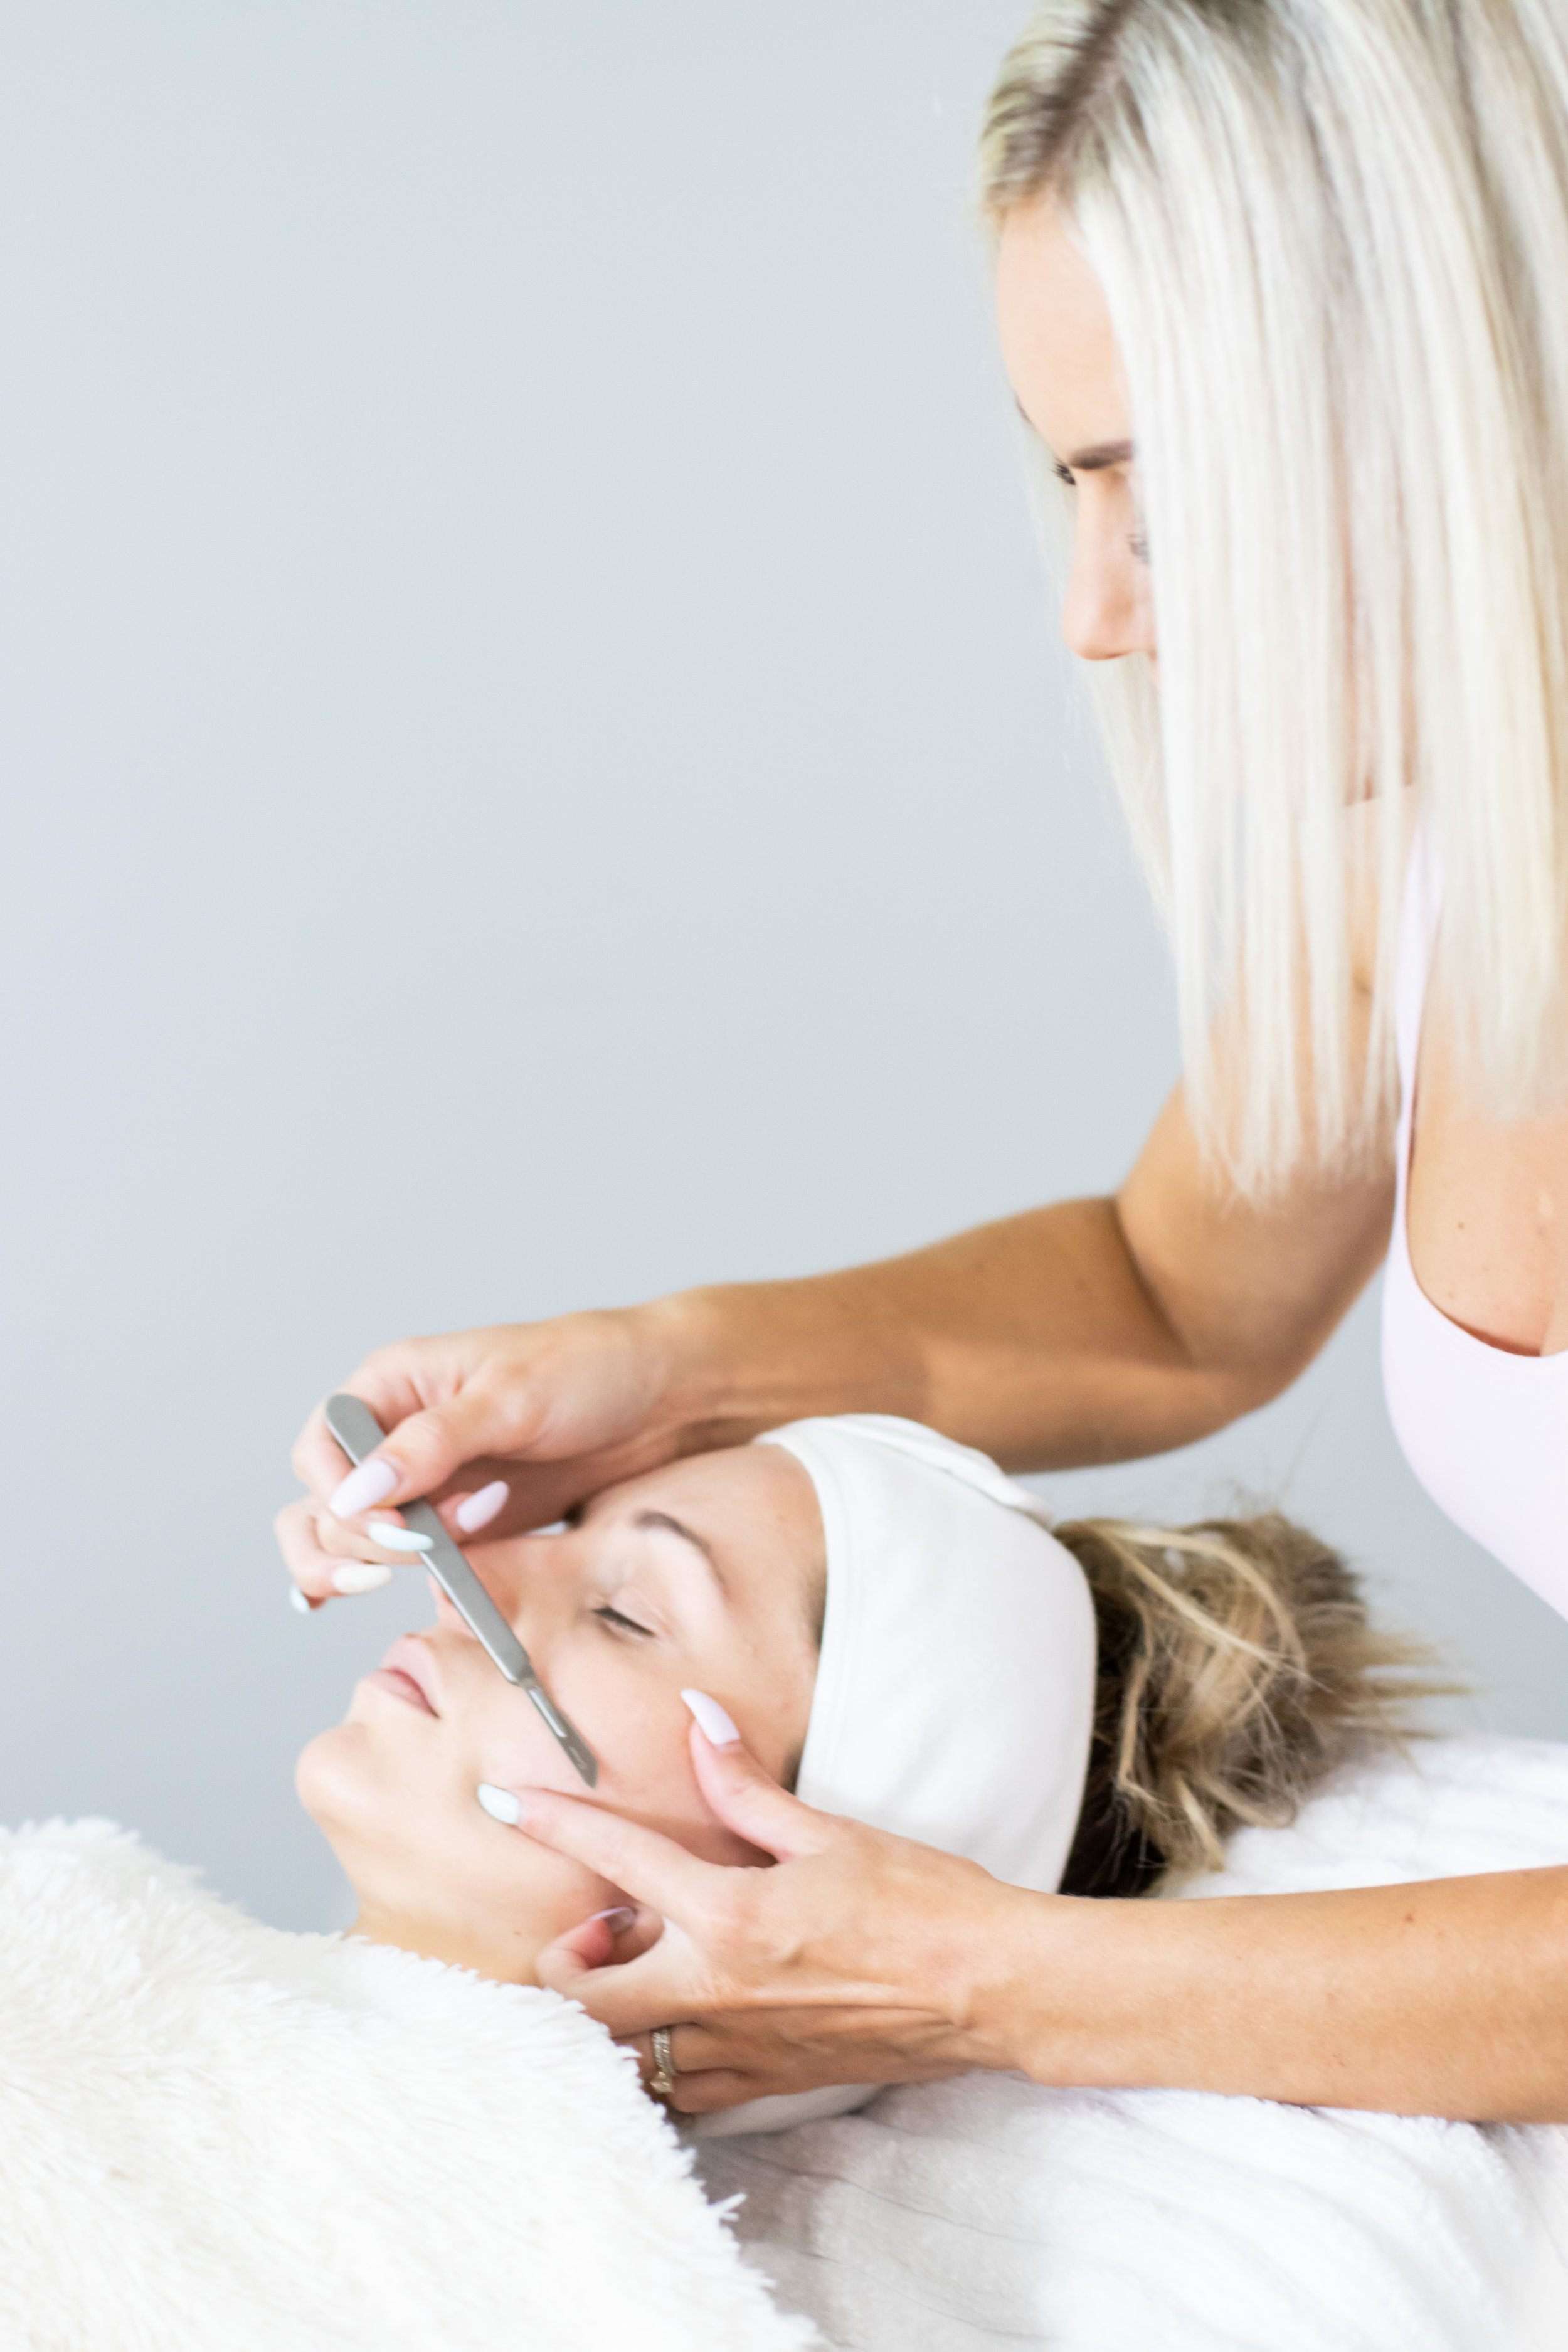 """- Dermaplaning is a cutting-edge exfoliation technique that utilizes precise, practiced strokes of a medical instrument to gently lift dull skin cells and fine,vellus hair, commonly known as """"peach fuzz."""" Causing no superficial irritation, dermaplaning is an effective exfoliation alternative to microdermabrasion or chemical peels for sensitive skin types."""